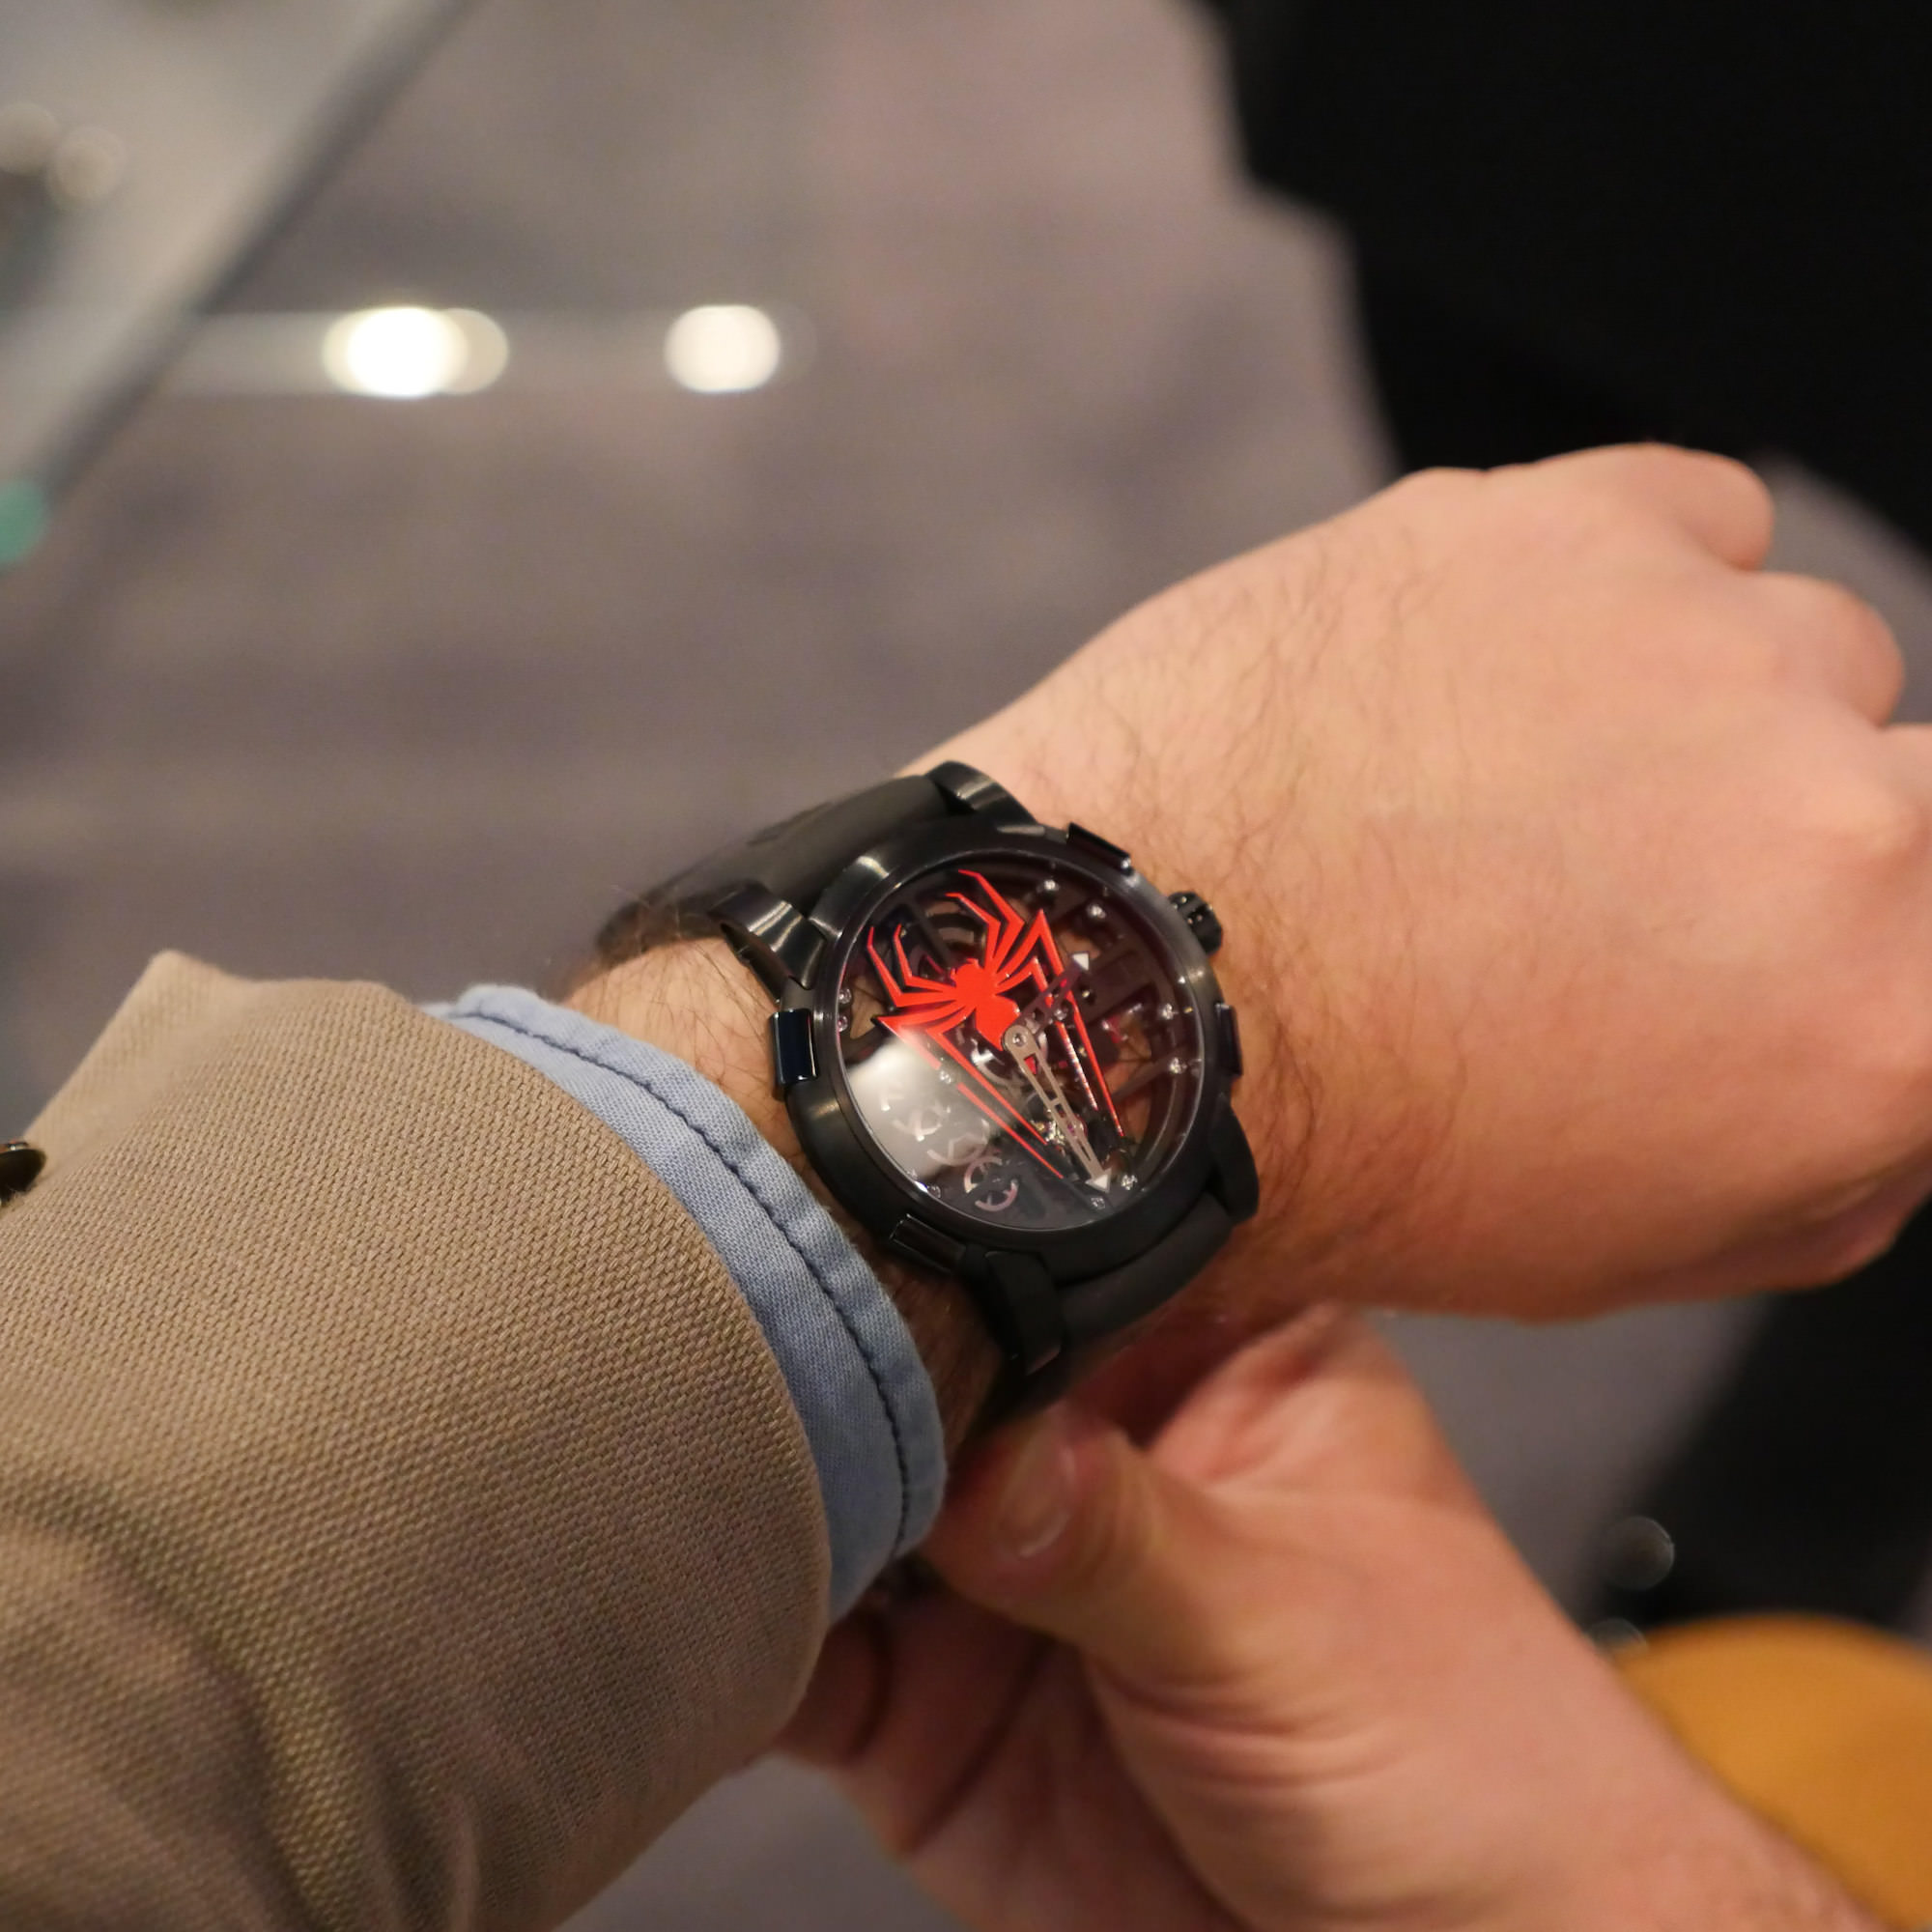 Skylab Spiderman sihh 2018 rj romain jerome